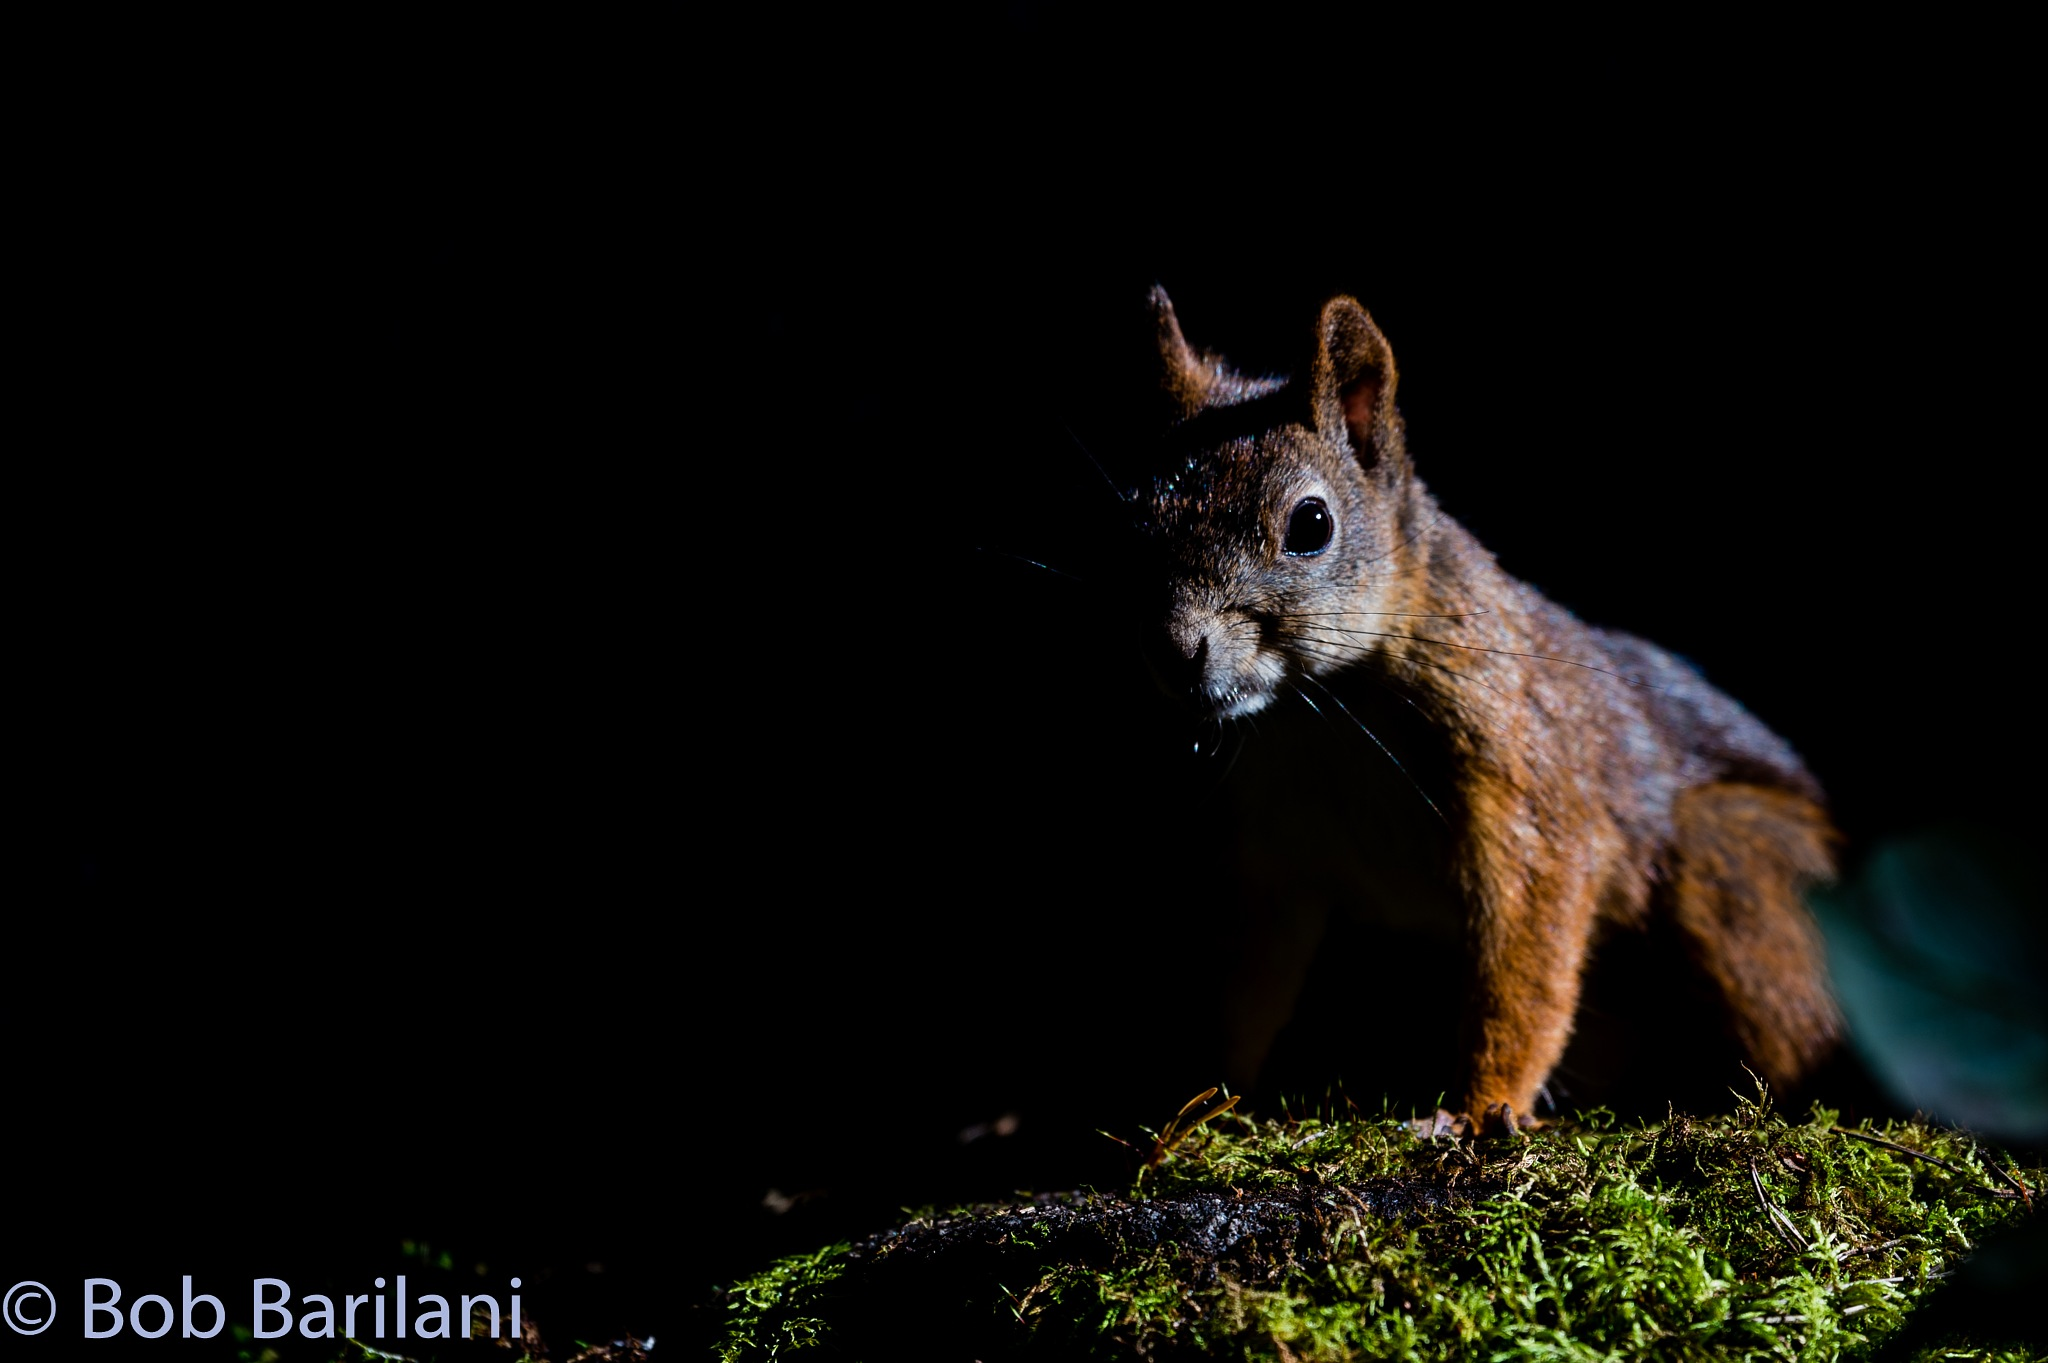 Red Squirrel - Full screen recommended by Roberto Barilani